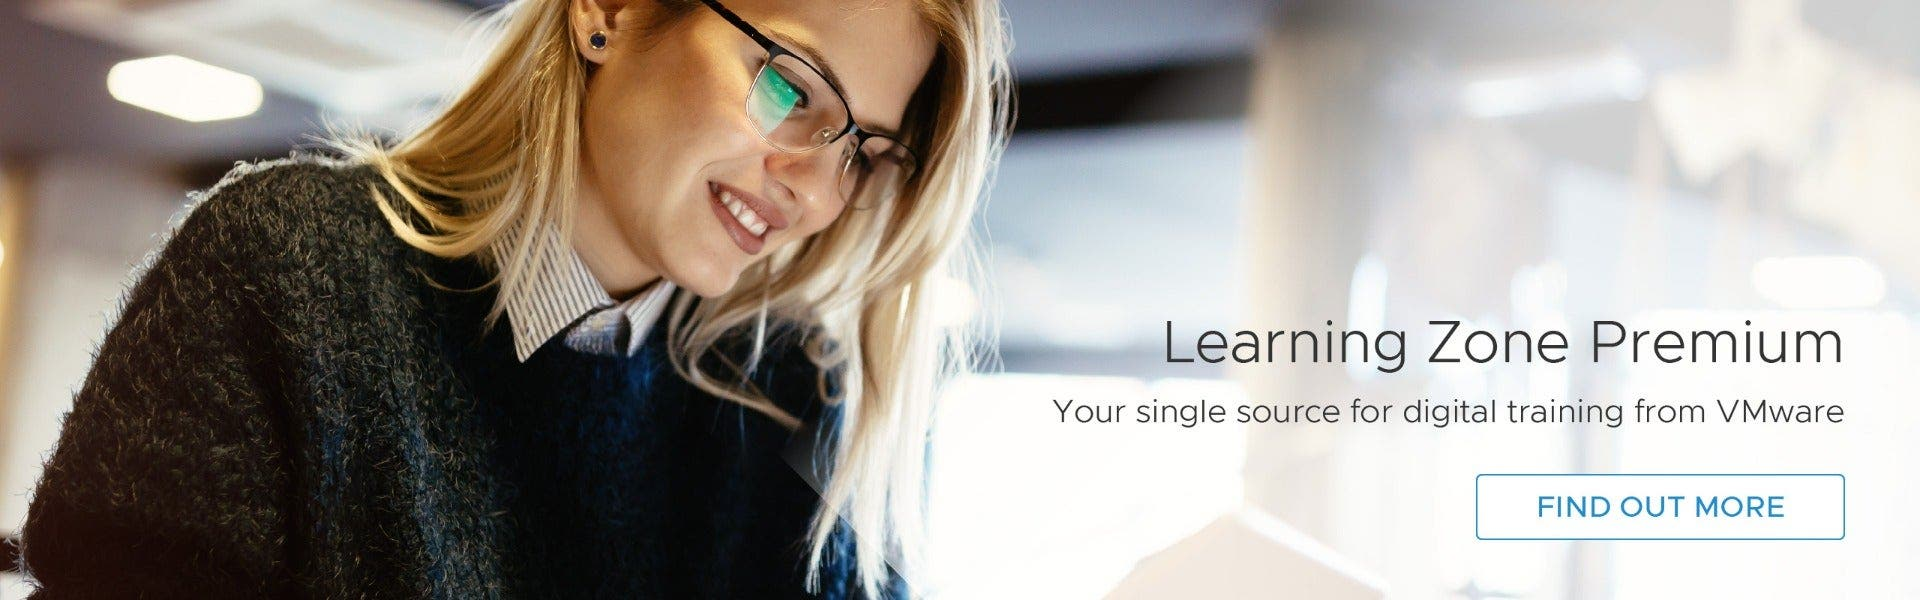 Learning Zone Premium. Your single source for digital training from VMware